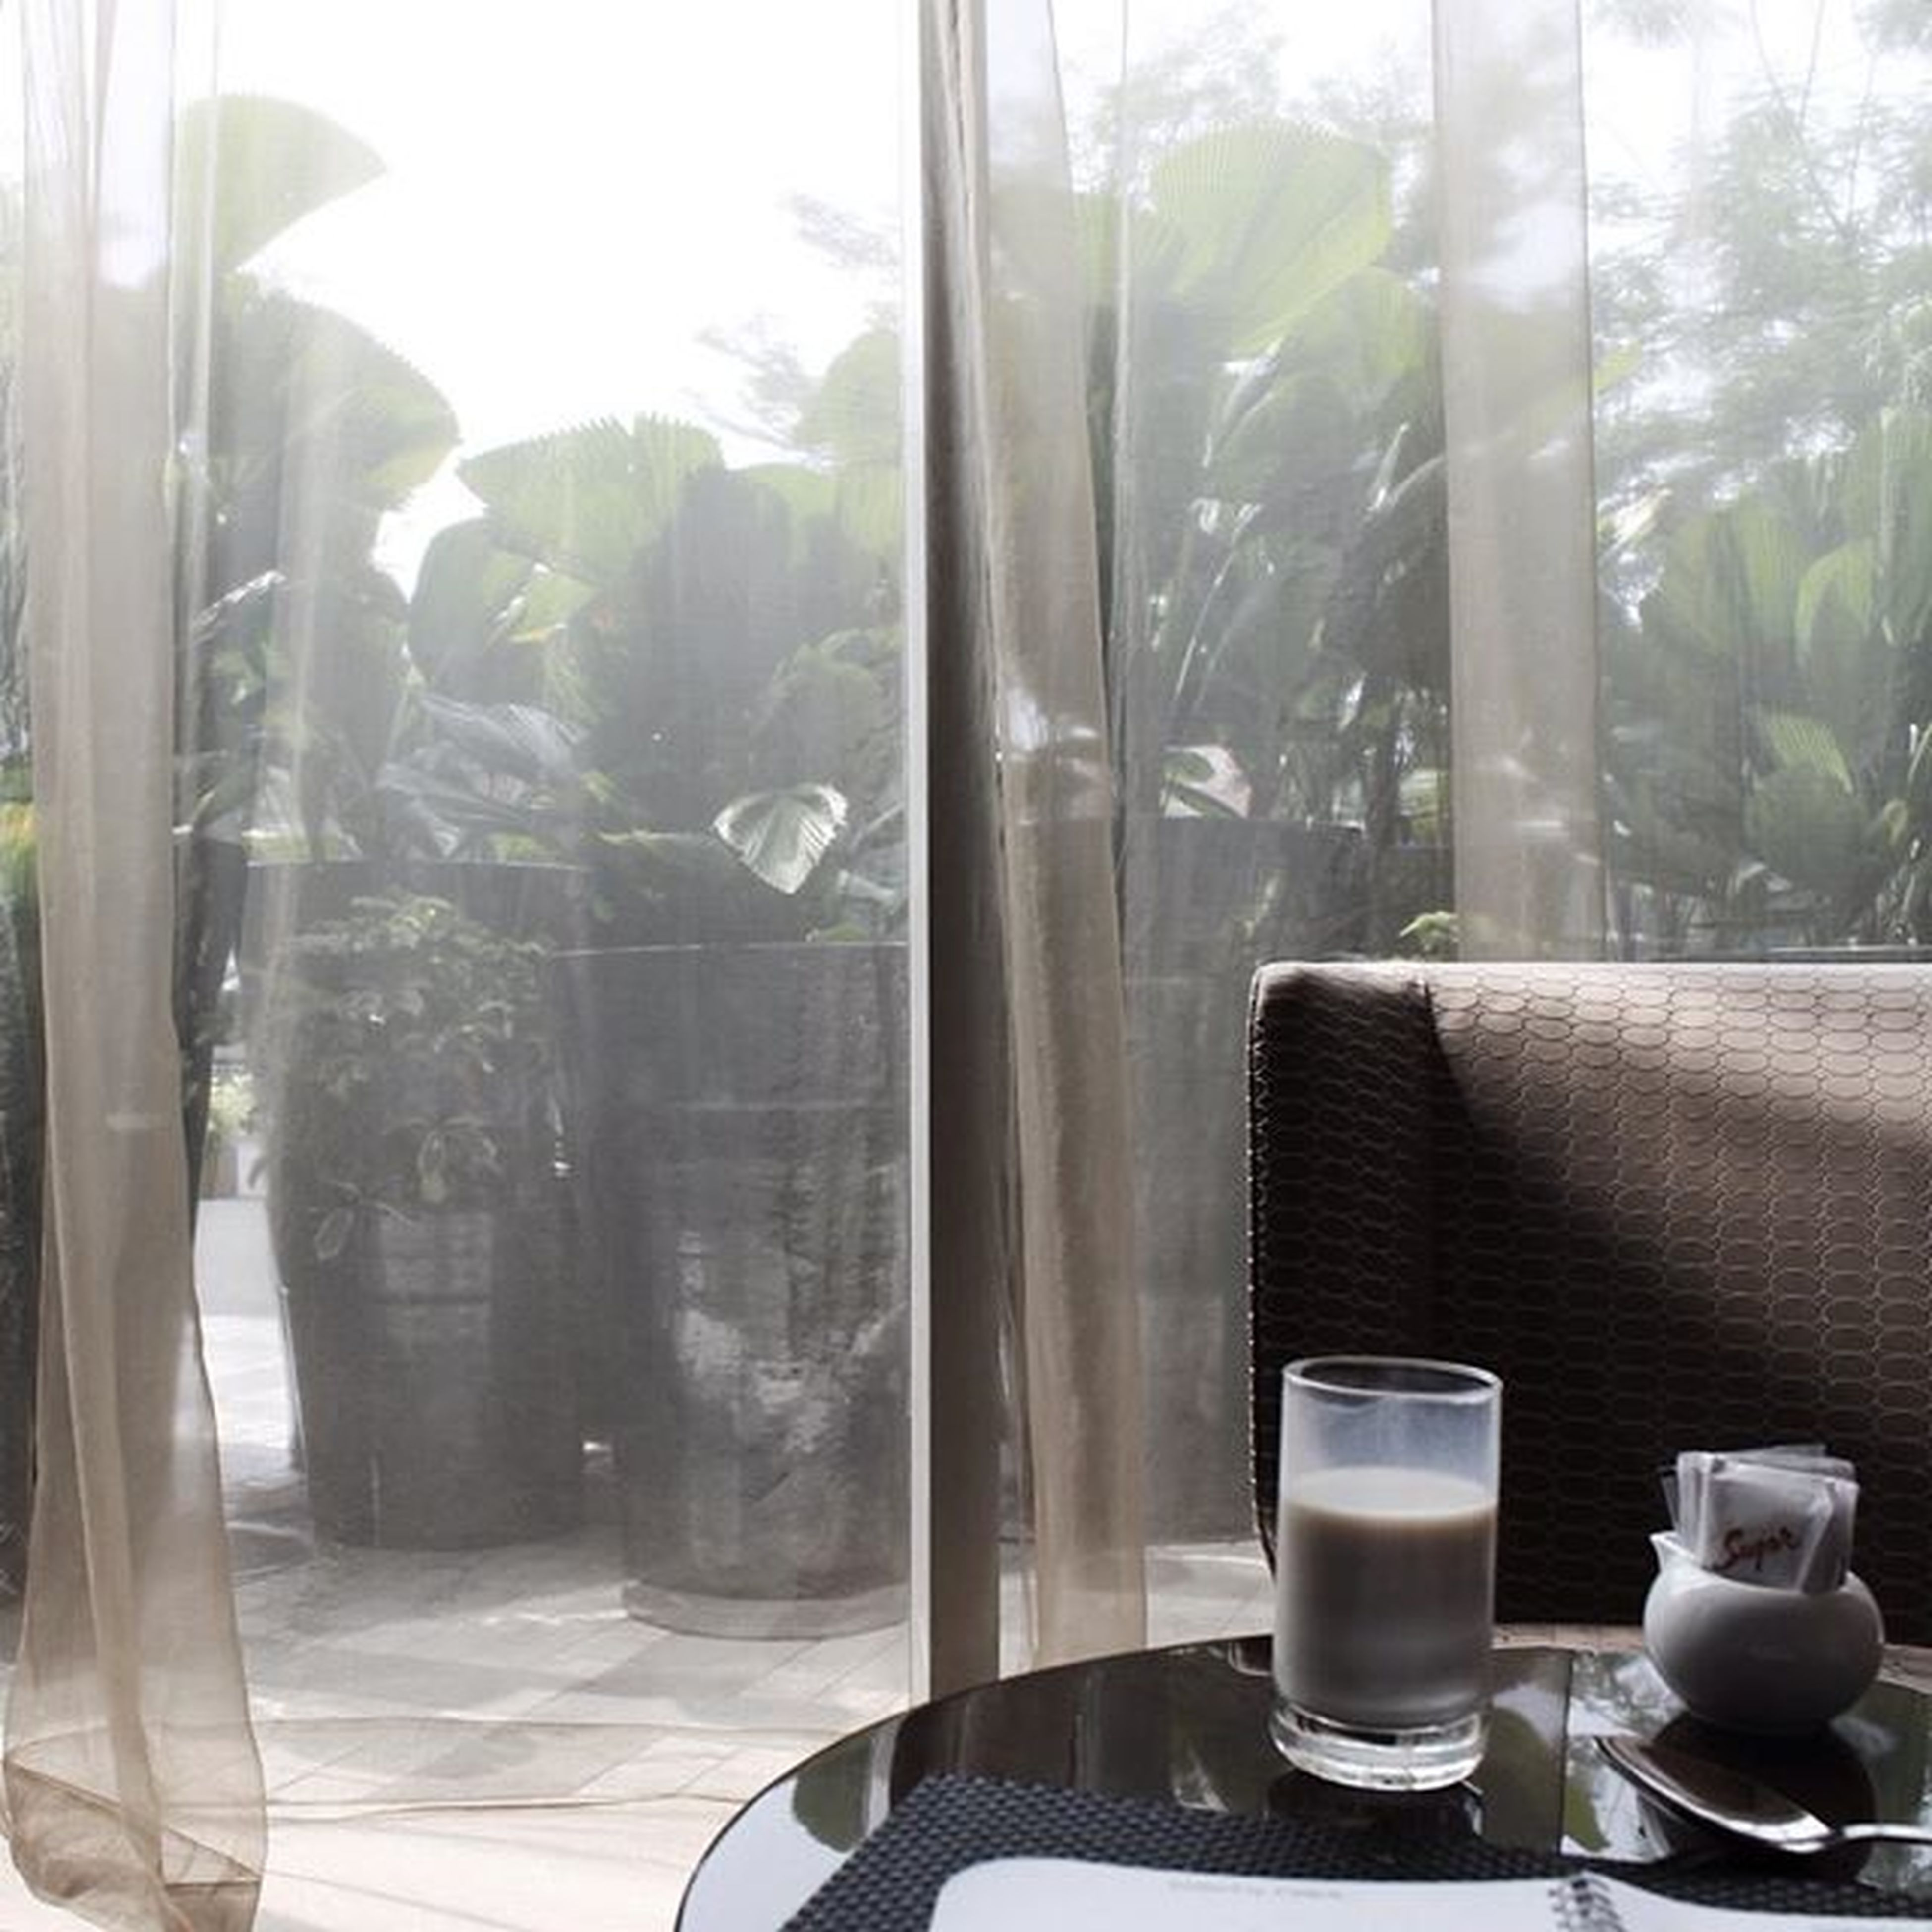 indoors, window, glass - material, transparent, table, curtain, glass, home interior, window sill, drinking glass, chair, drink, potted plant, absence, sunlight, day, empty, close-up, refreshment, reflection